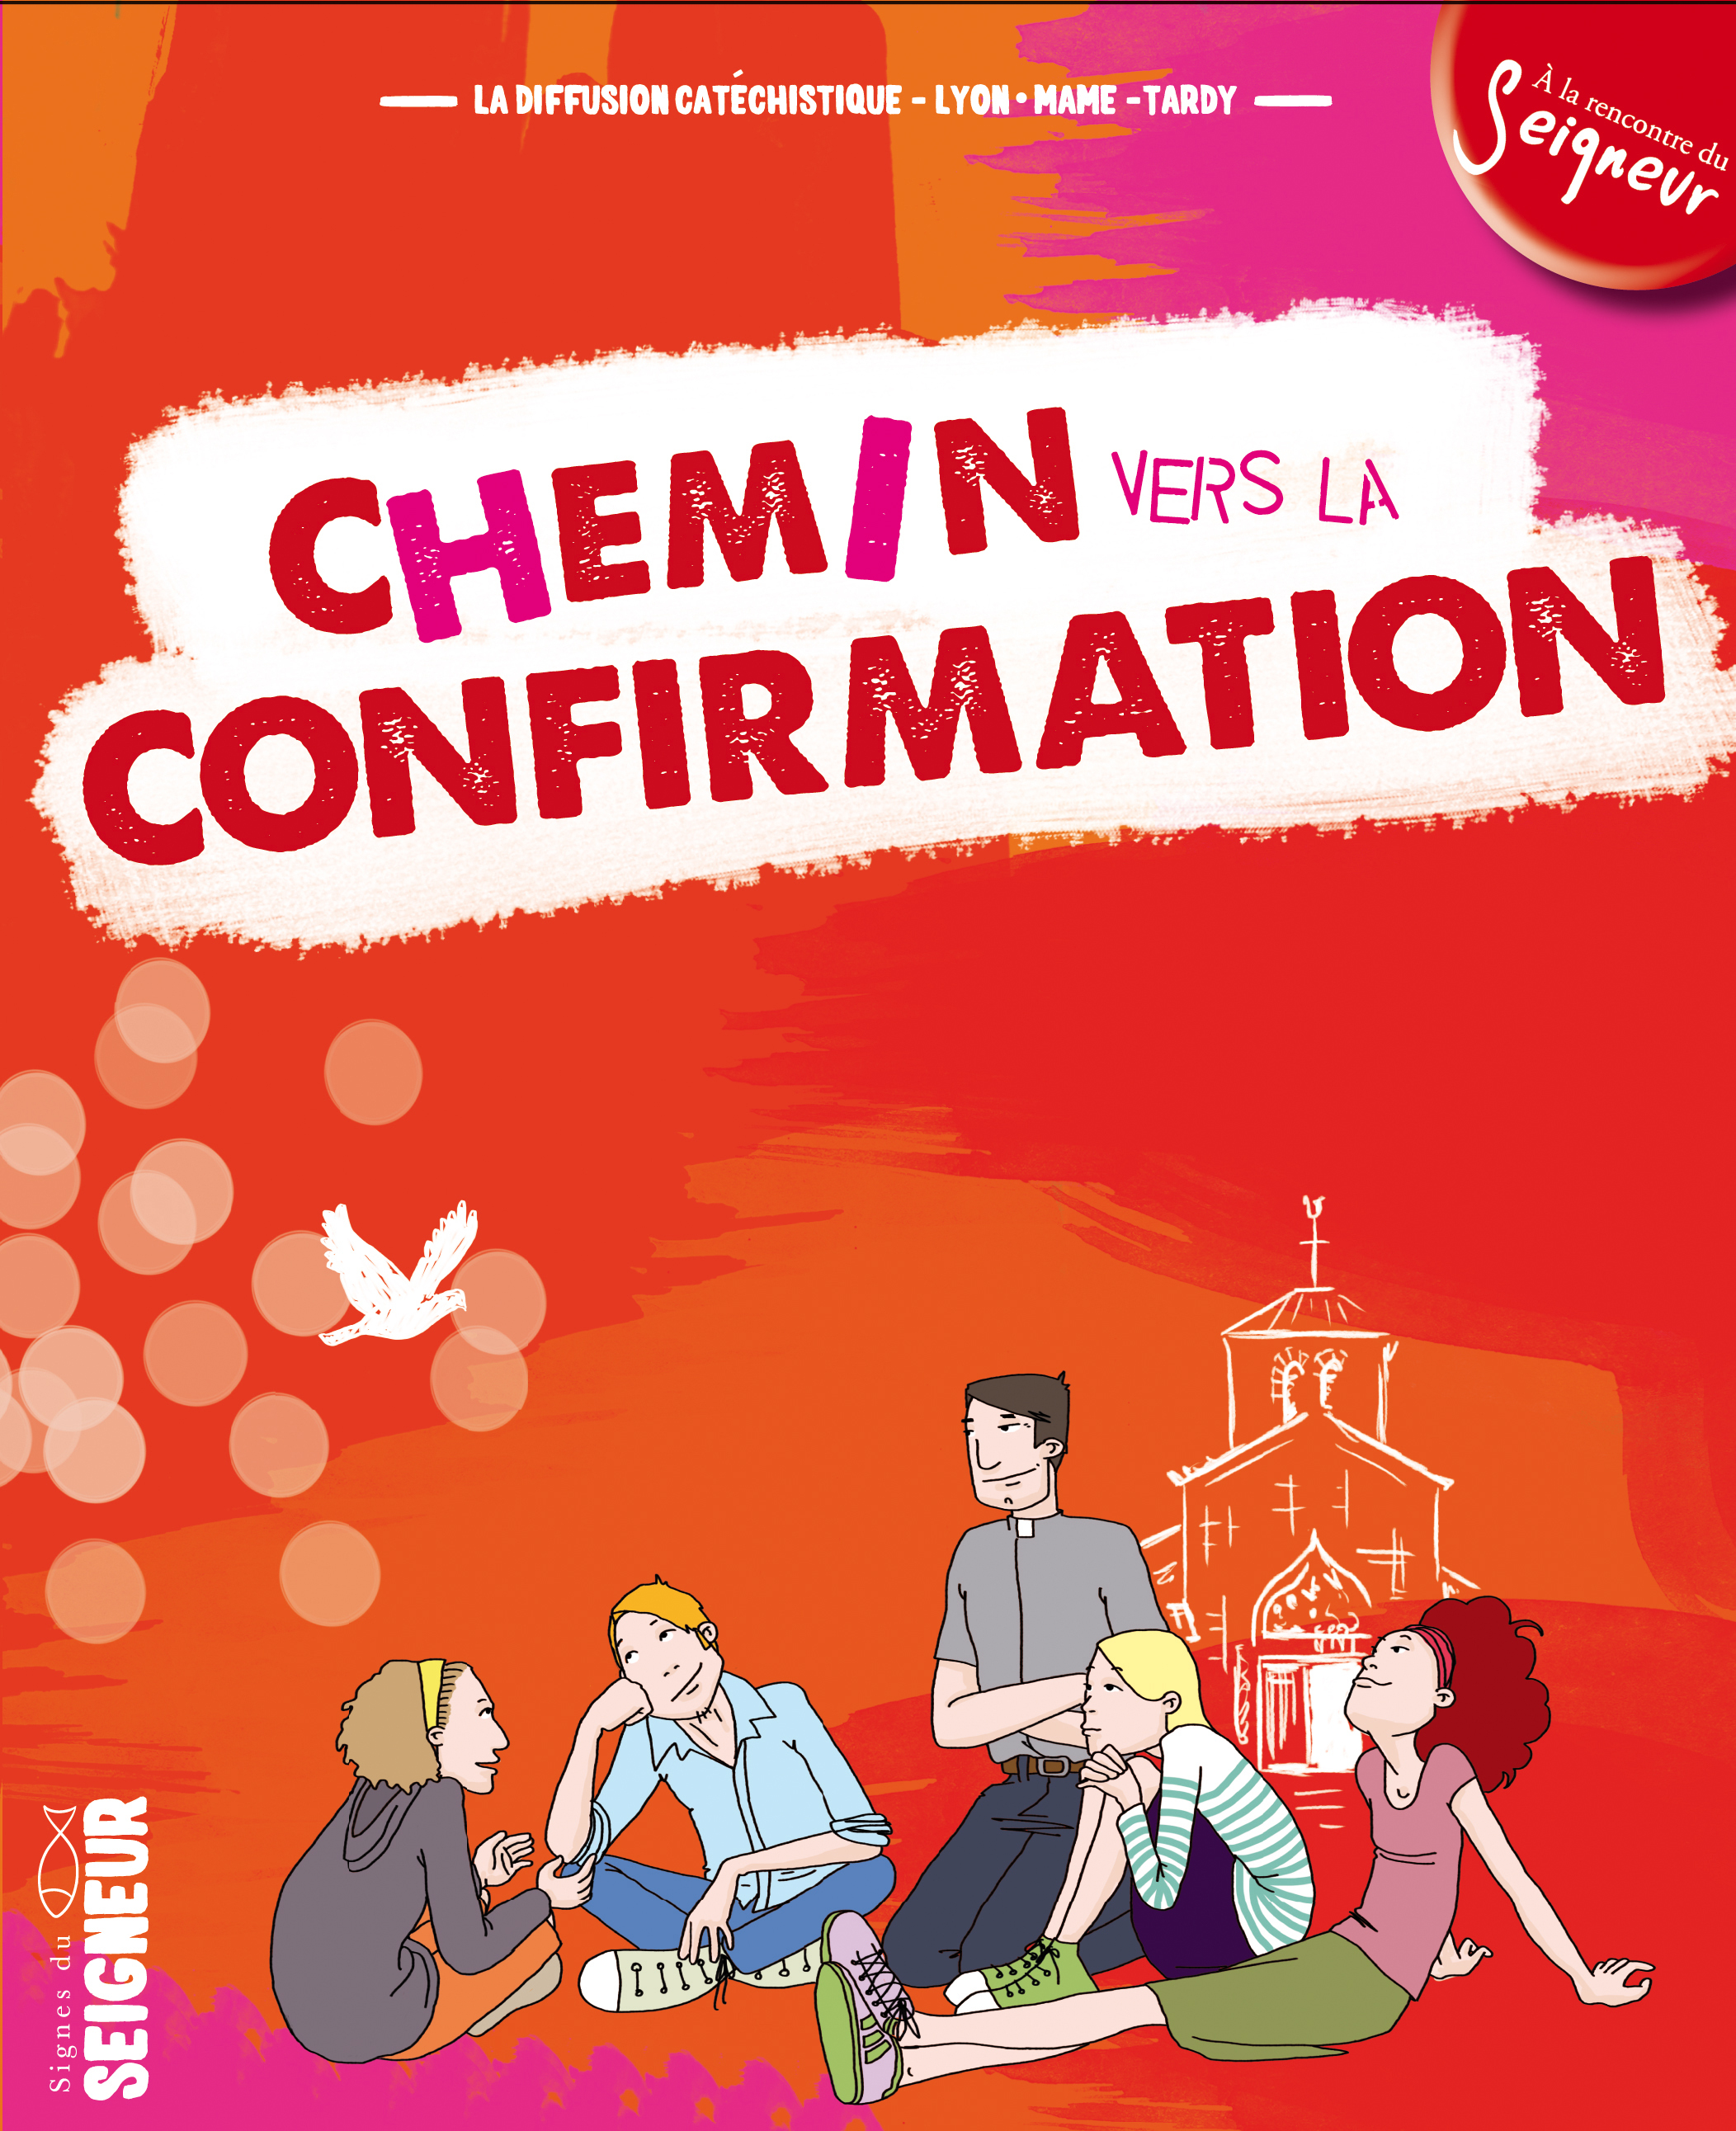 CHEMIN VERS LA CONFIRMATION - DOCUMENT JEUNE CONFIRMANT